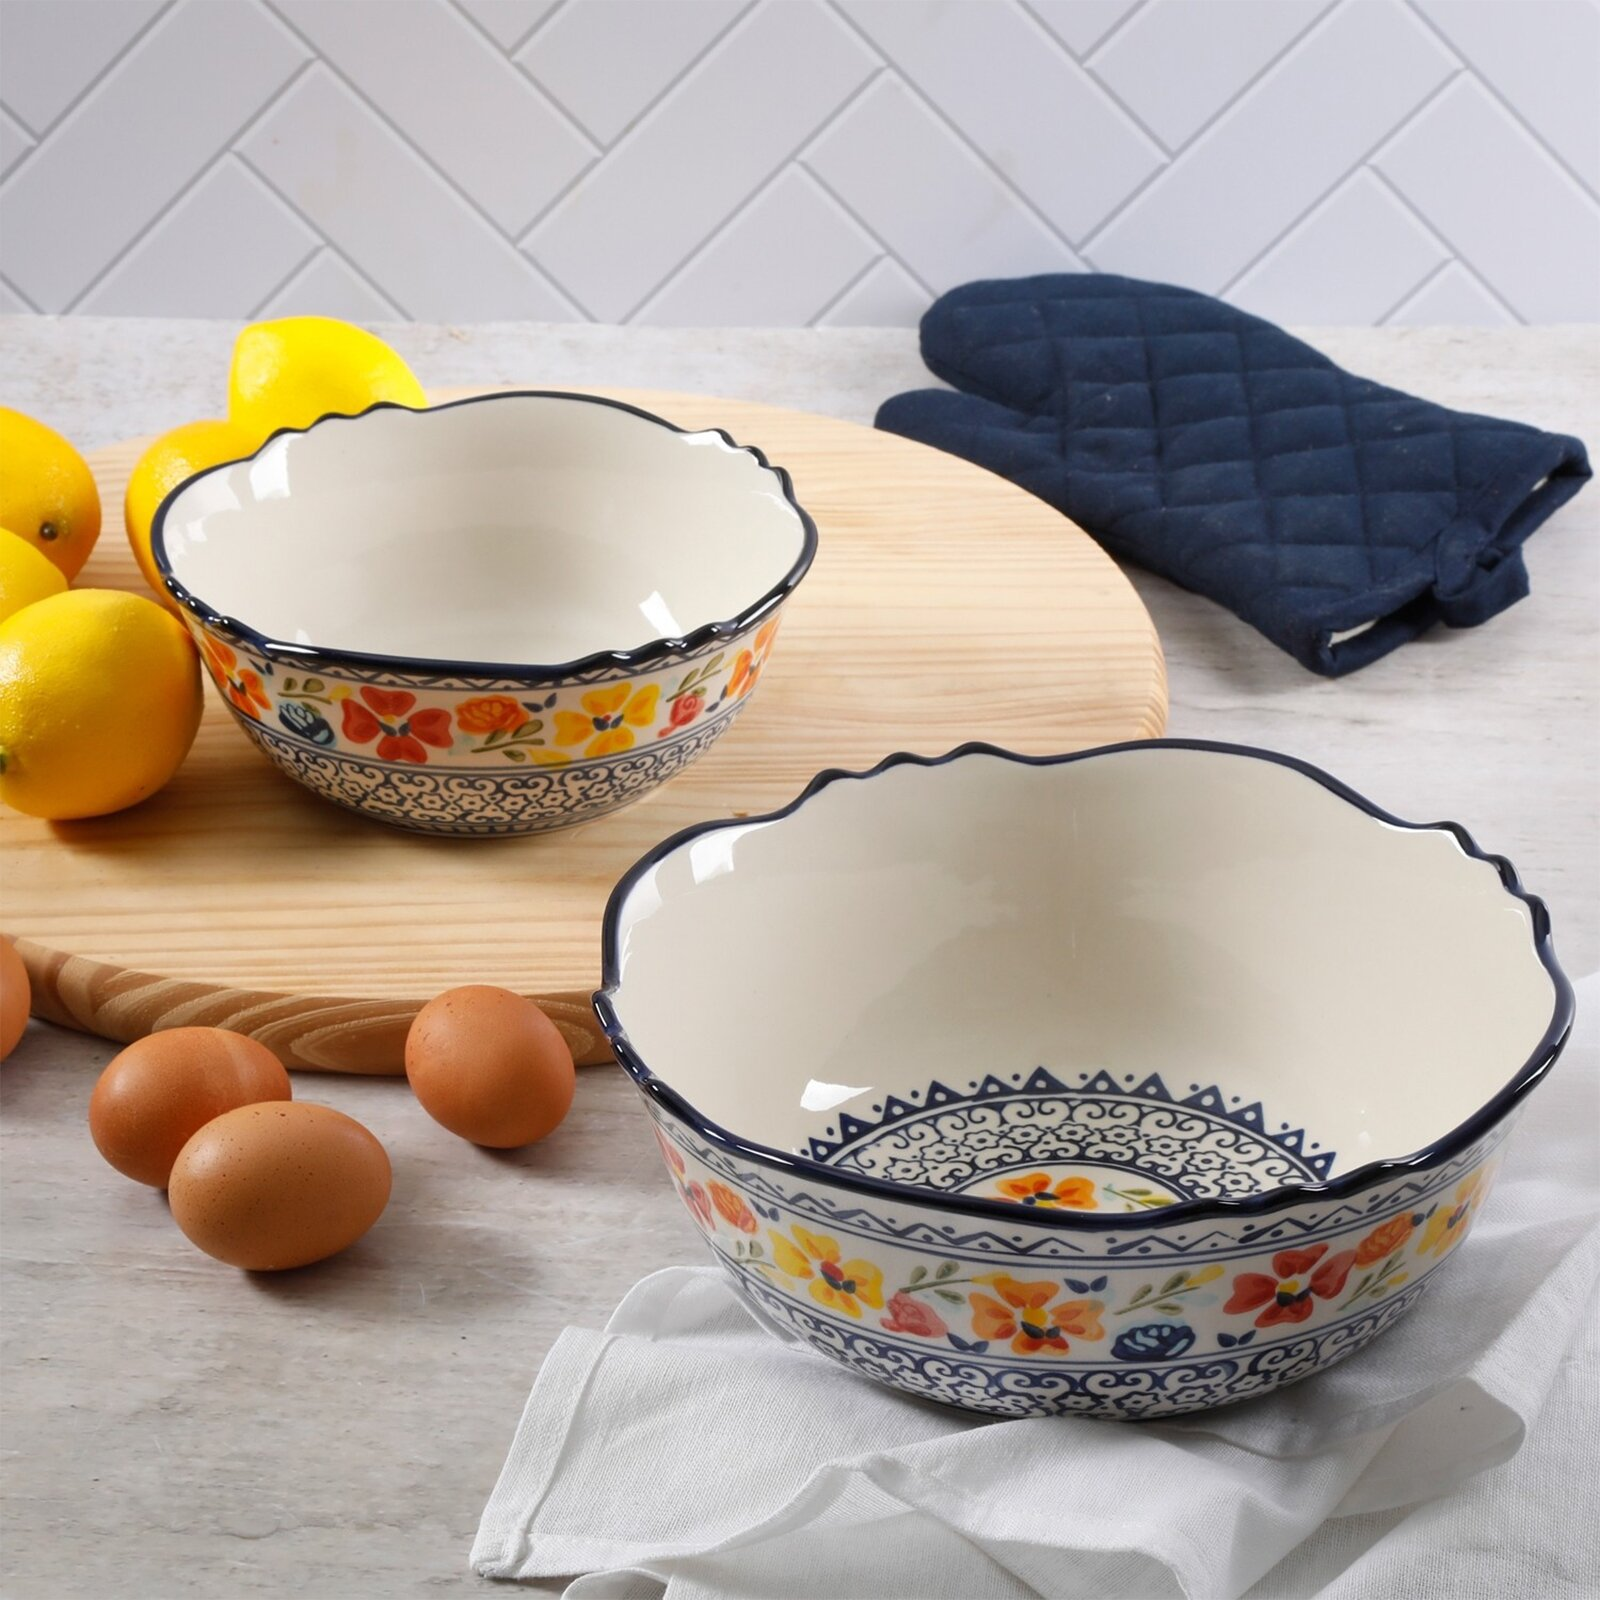 Floral Serving Bowls You Ll Love In 2021 Wayfair